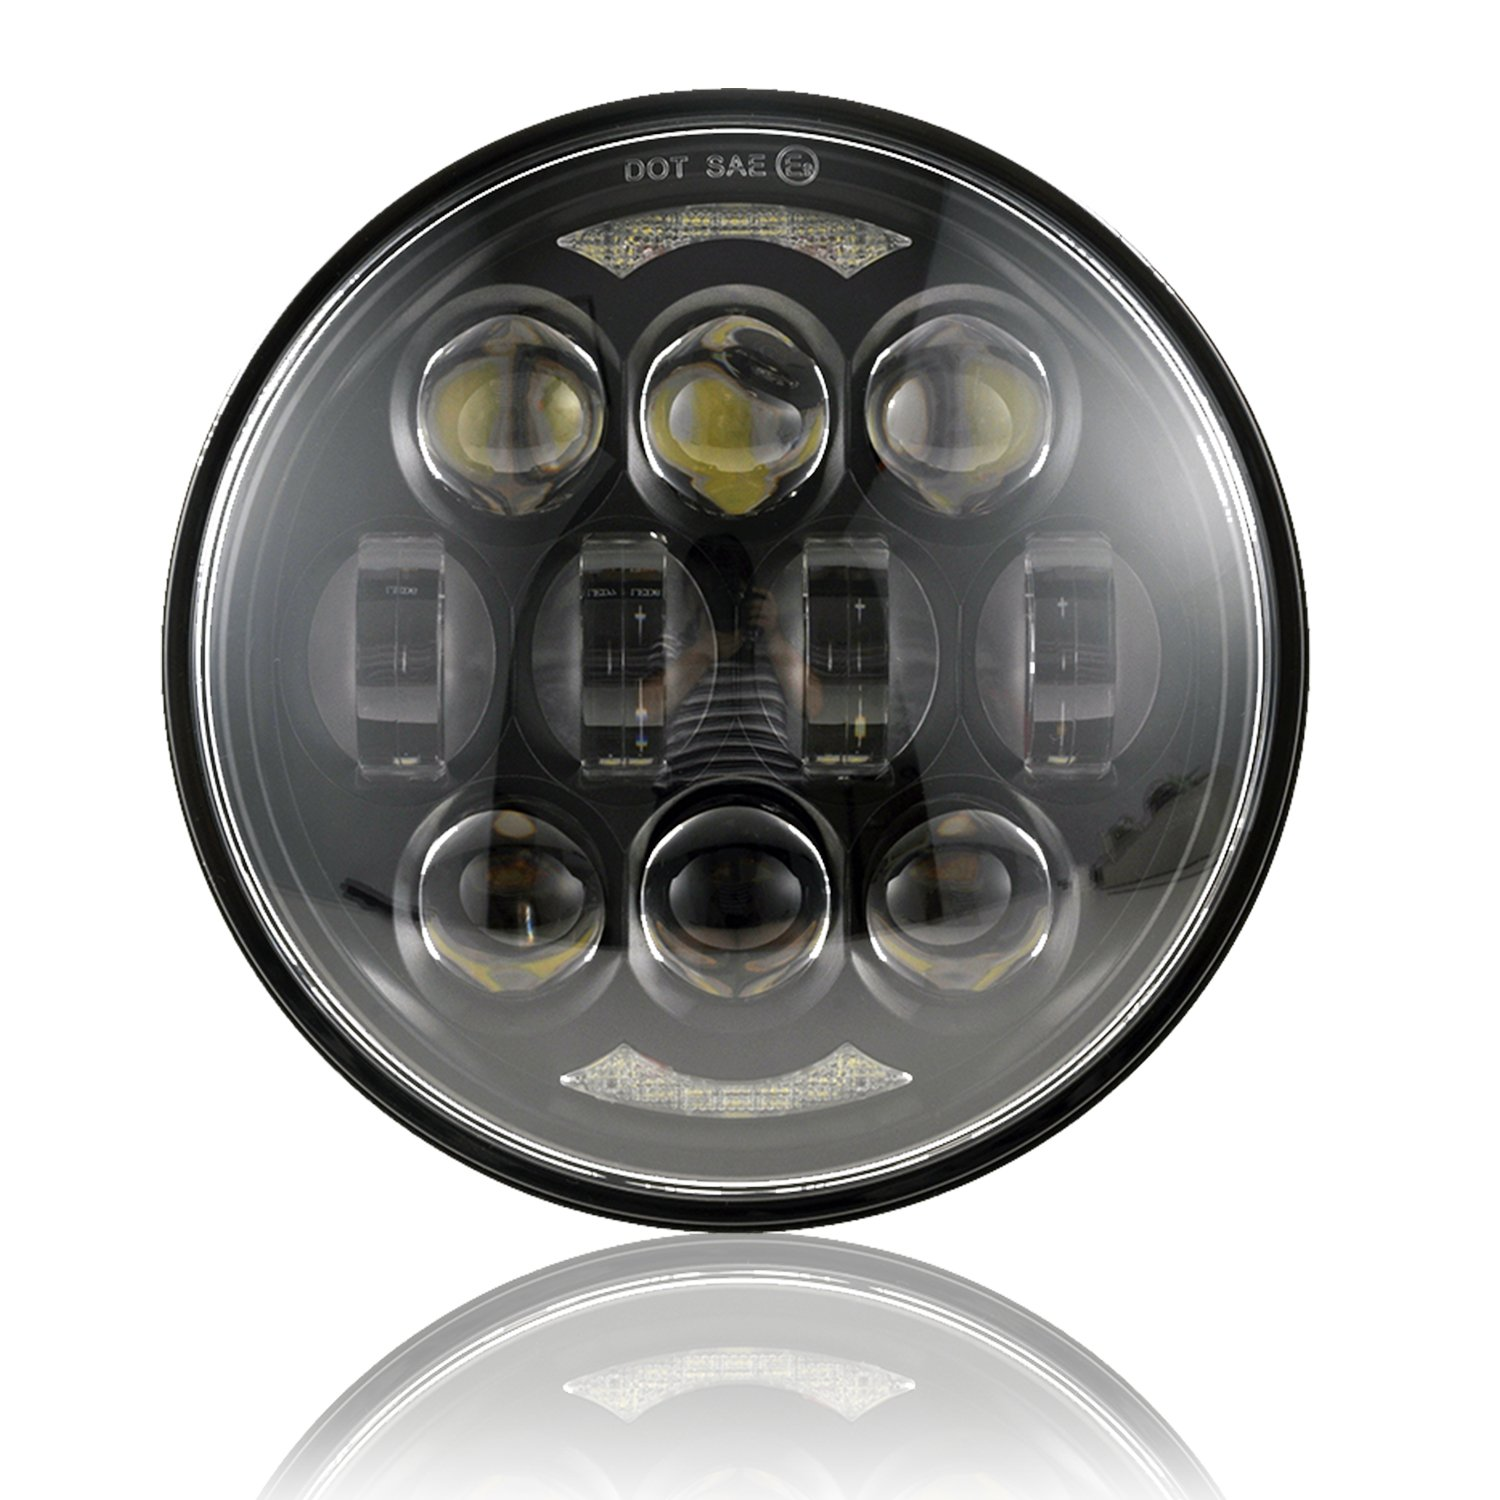 2019 New Brightest DOT Approved 80W Osram Chips 5-3/4'' 5.75'' Round LED Projection Headlight for Harley Motorcycles Black by LX-LIGHT